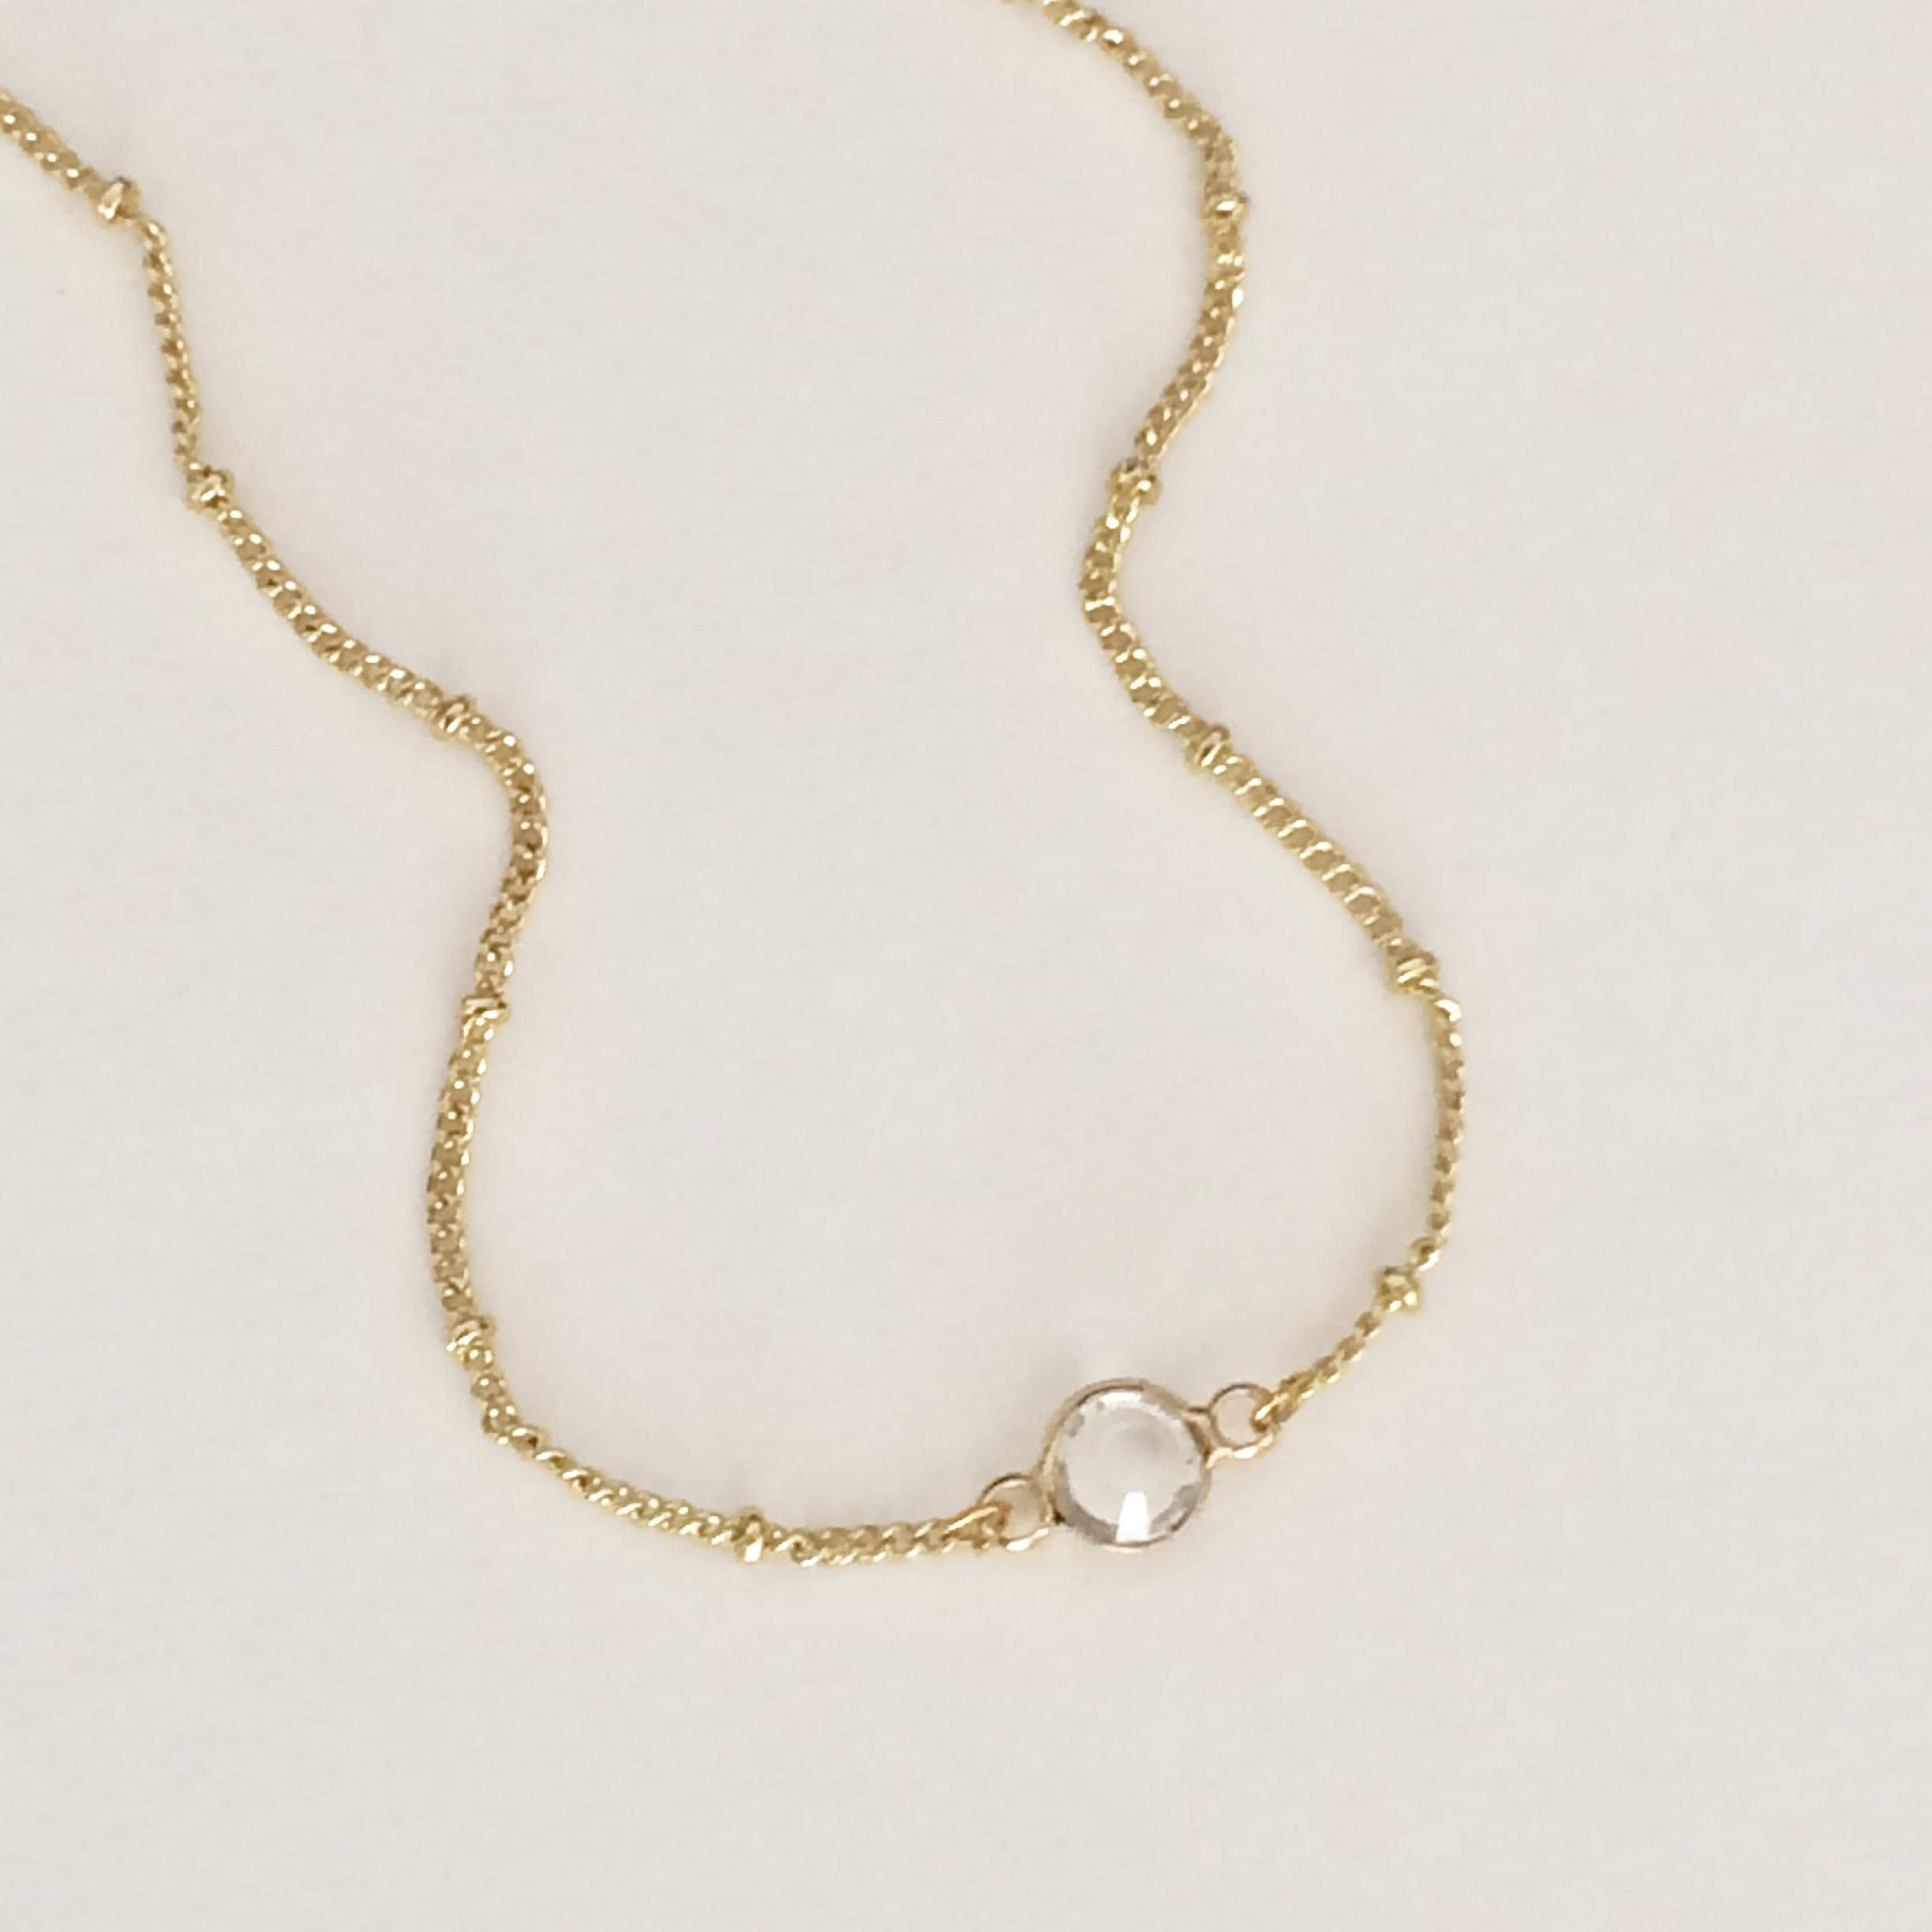 uk gold simple zirconia necklace zoom luxe fullxfull il sparkly corinne listing cubic bridal